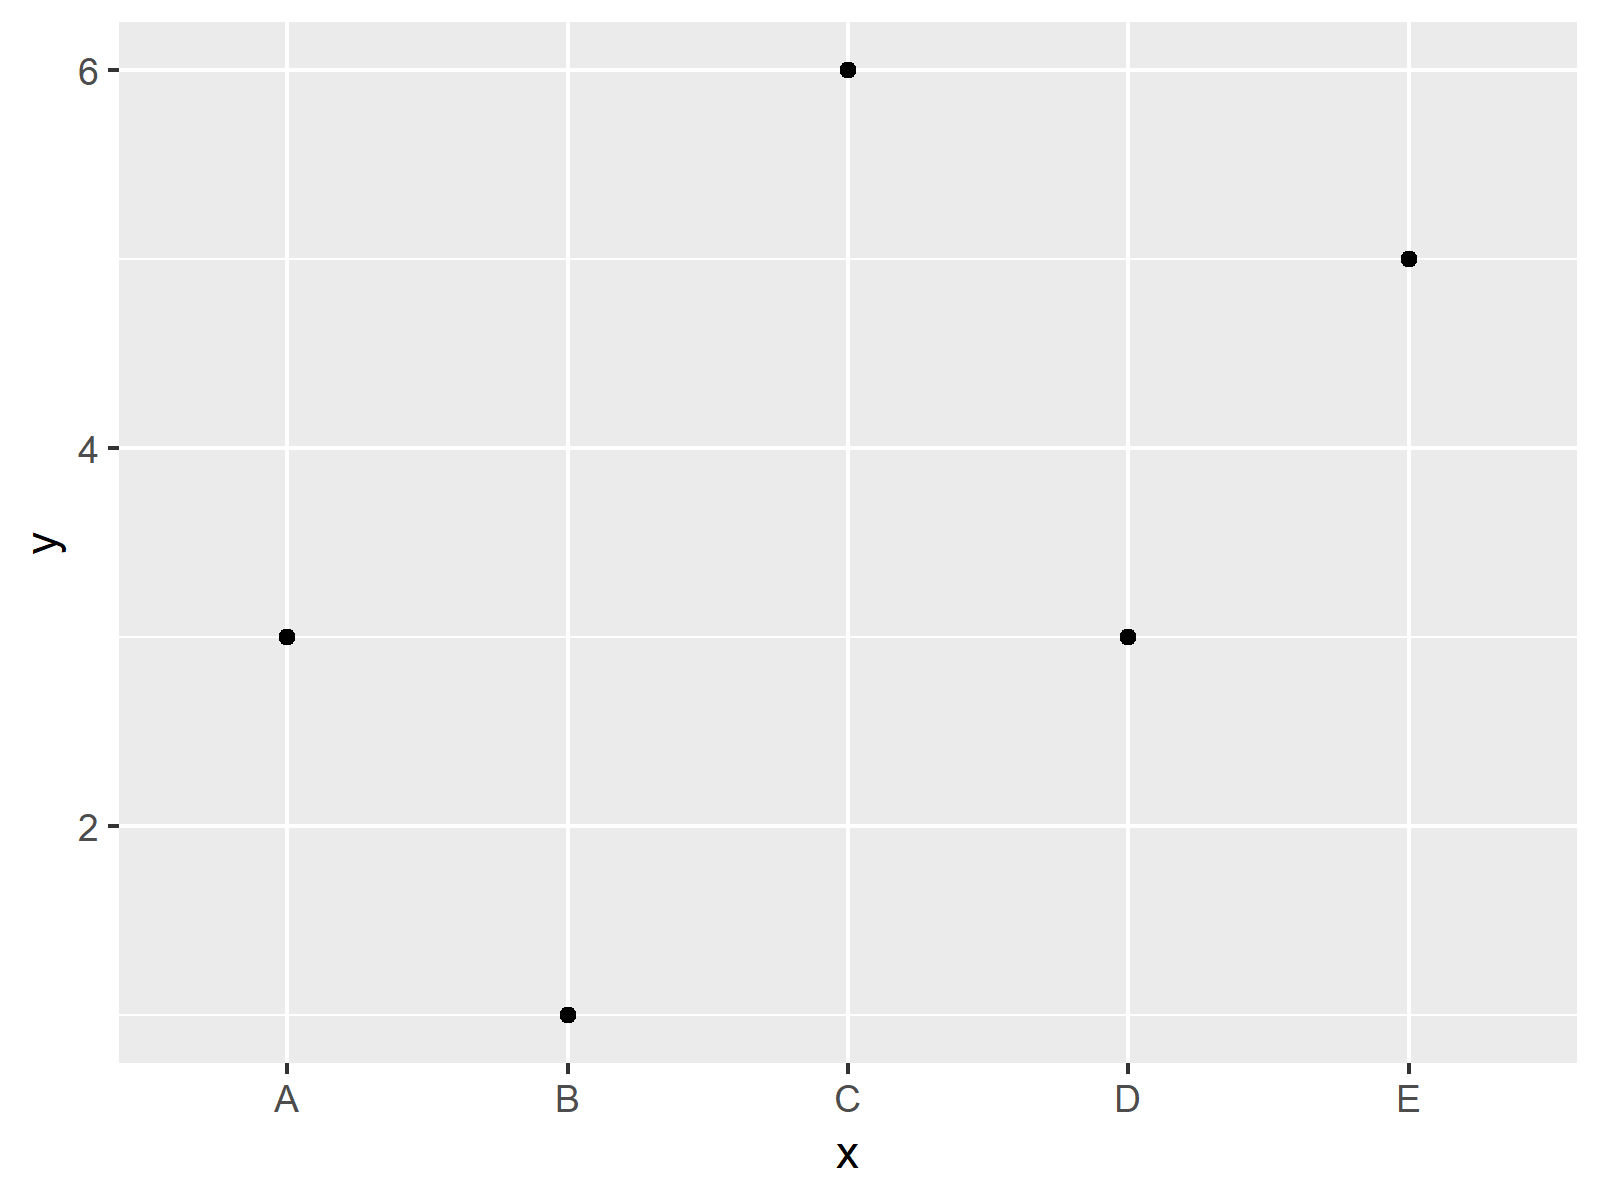 r graph figure 1 ggplot2 geom_path each group only one observation r